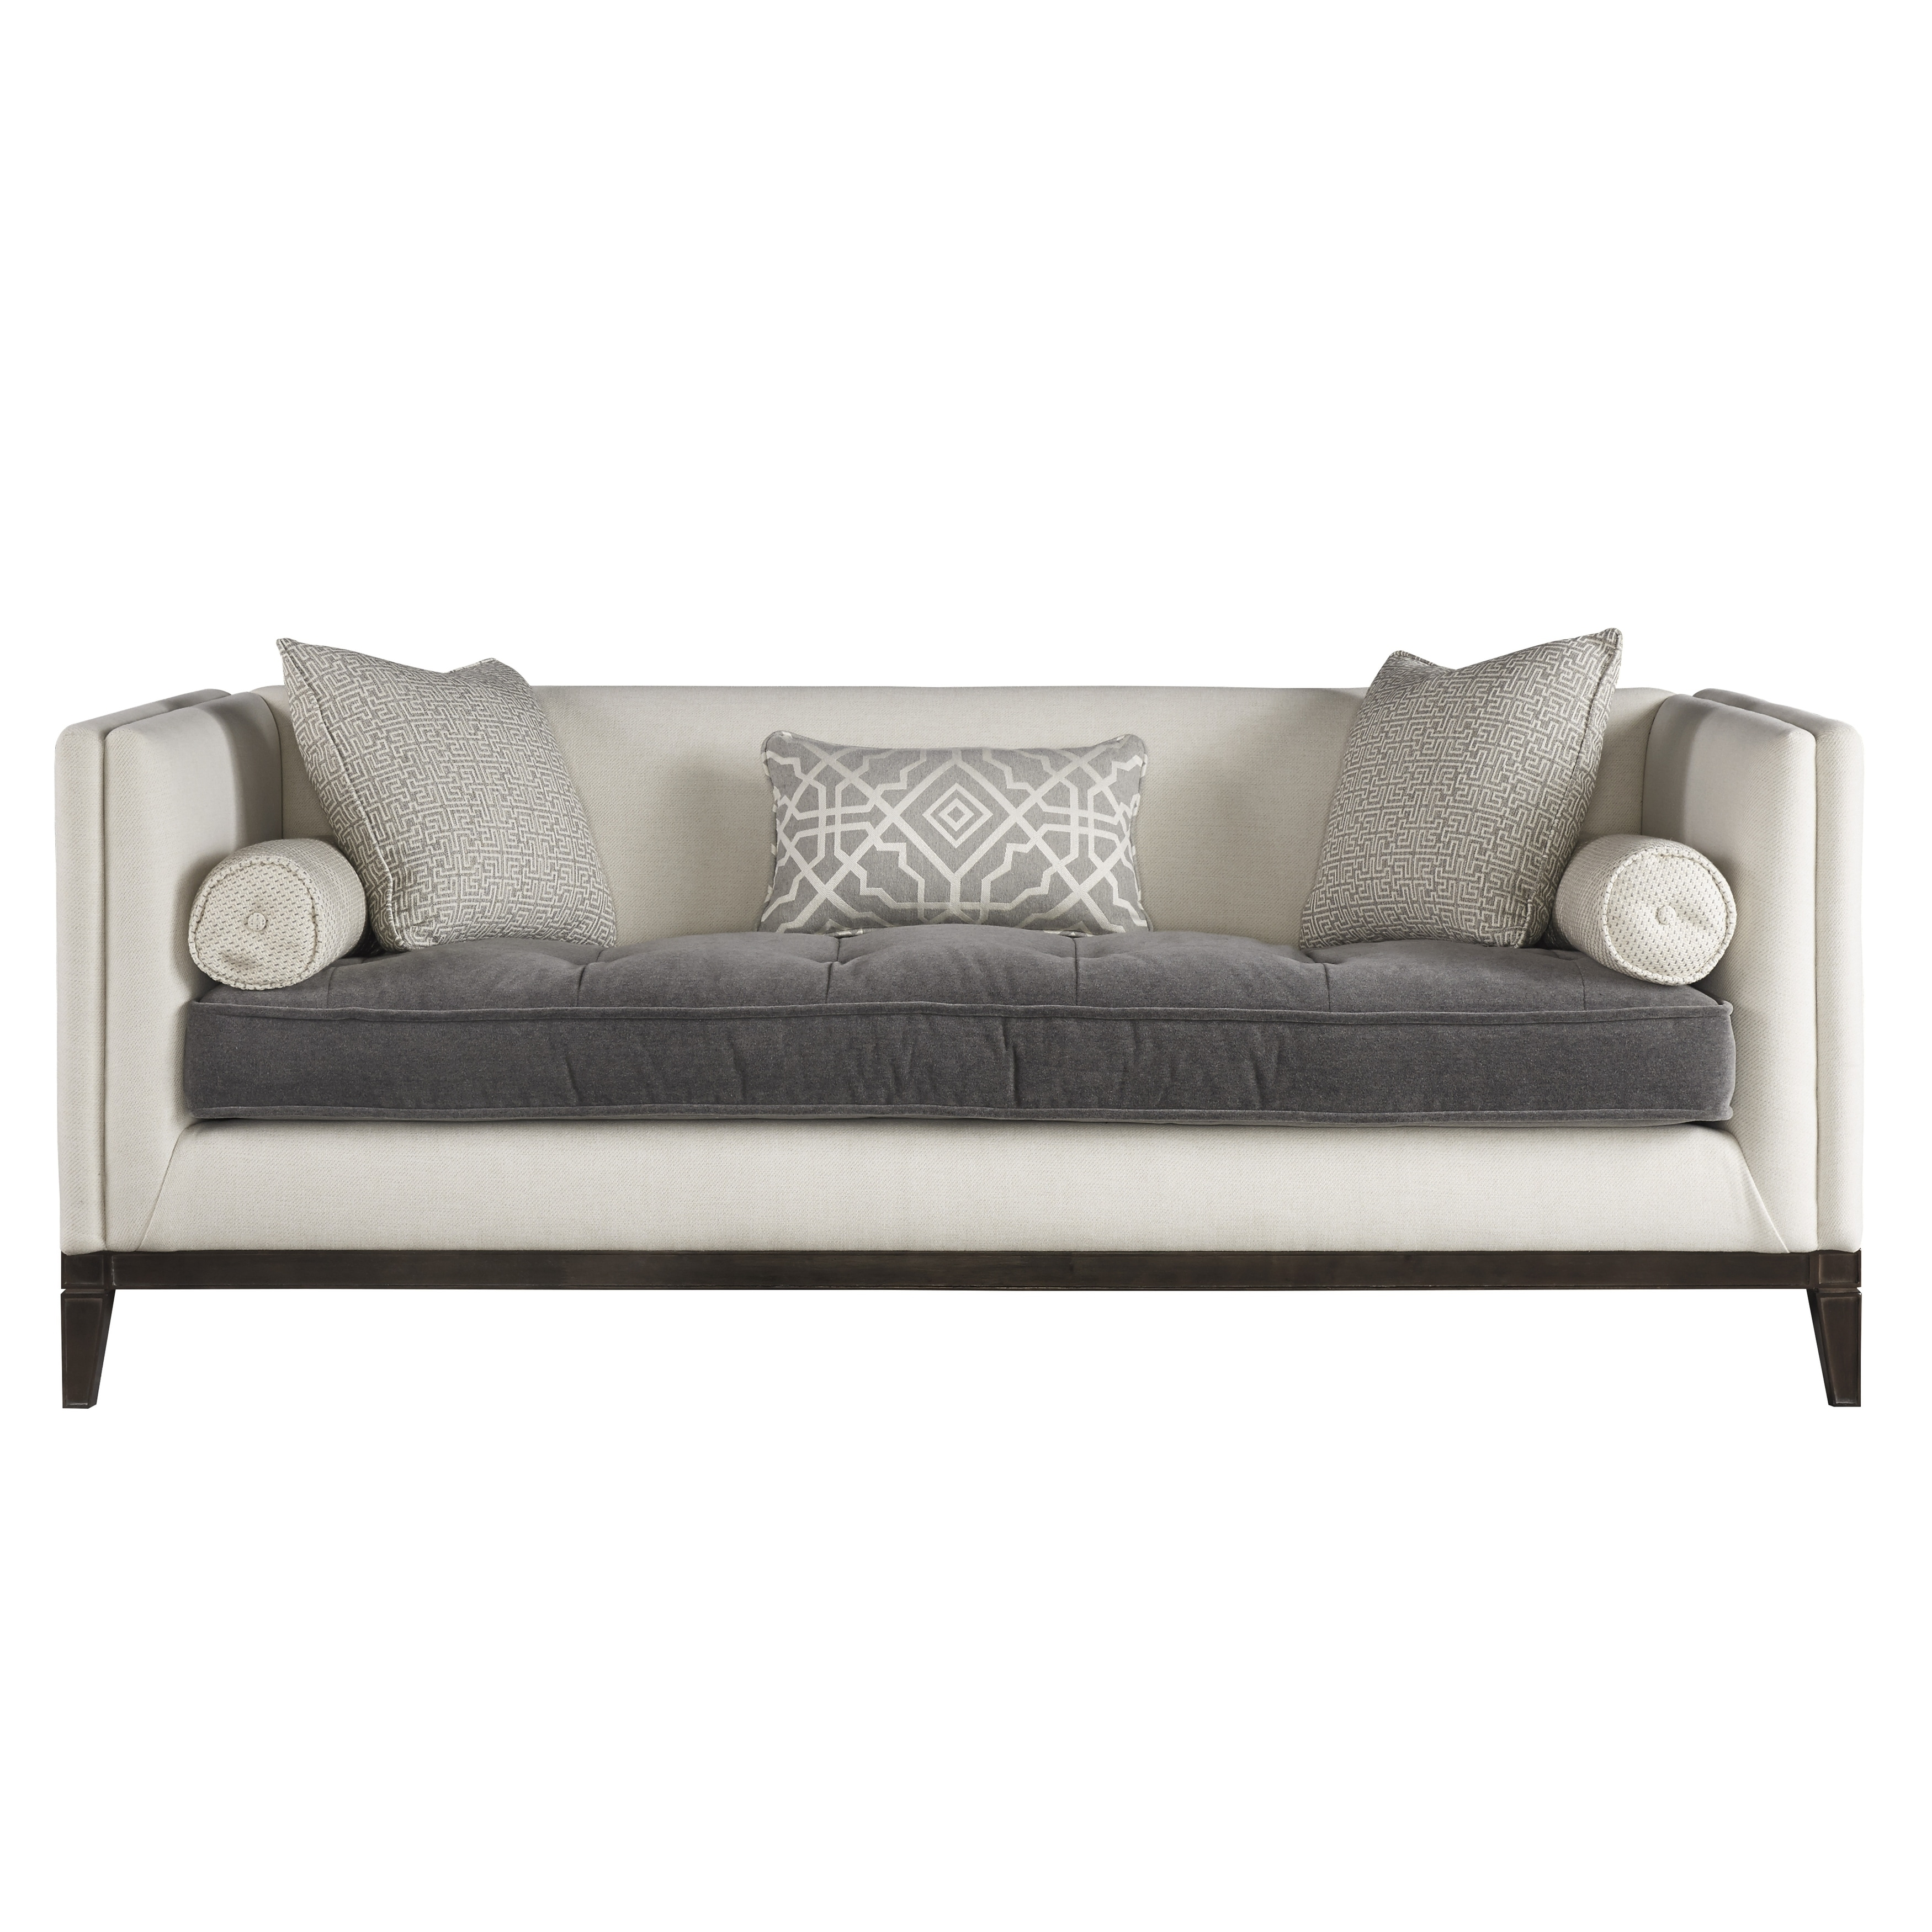 tufted button sofa cama orleans tugo shop curated ivory and grey hartley free shipping today overstock com 18705512